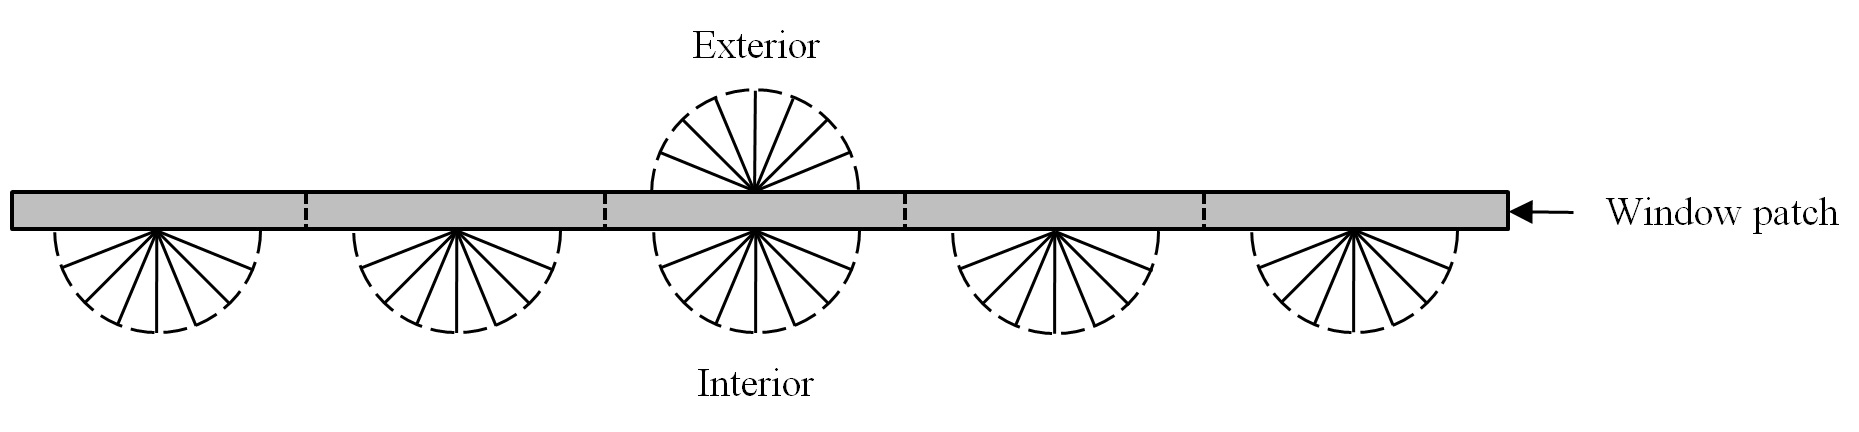 FIG. 20 – Single virtual camera positioned on window exterior.